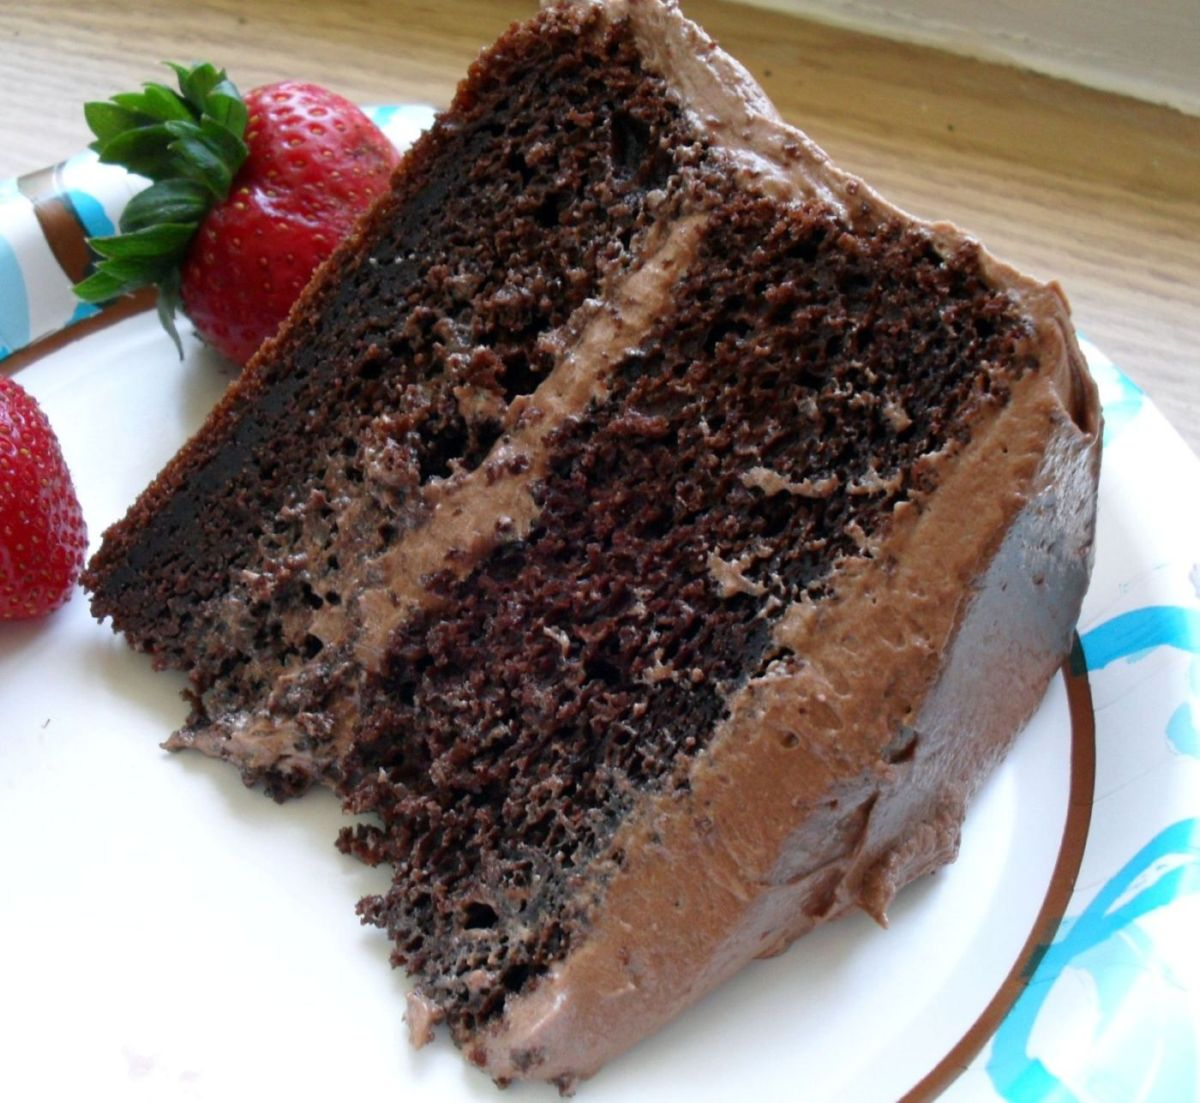 CHOCOLATE CAKE YUM! - Chocolate Photo (33482002) - Fanpop